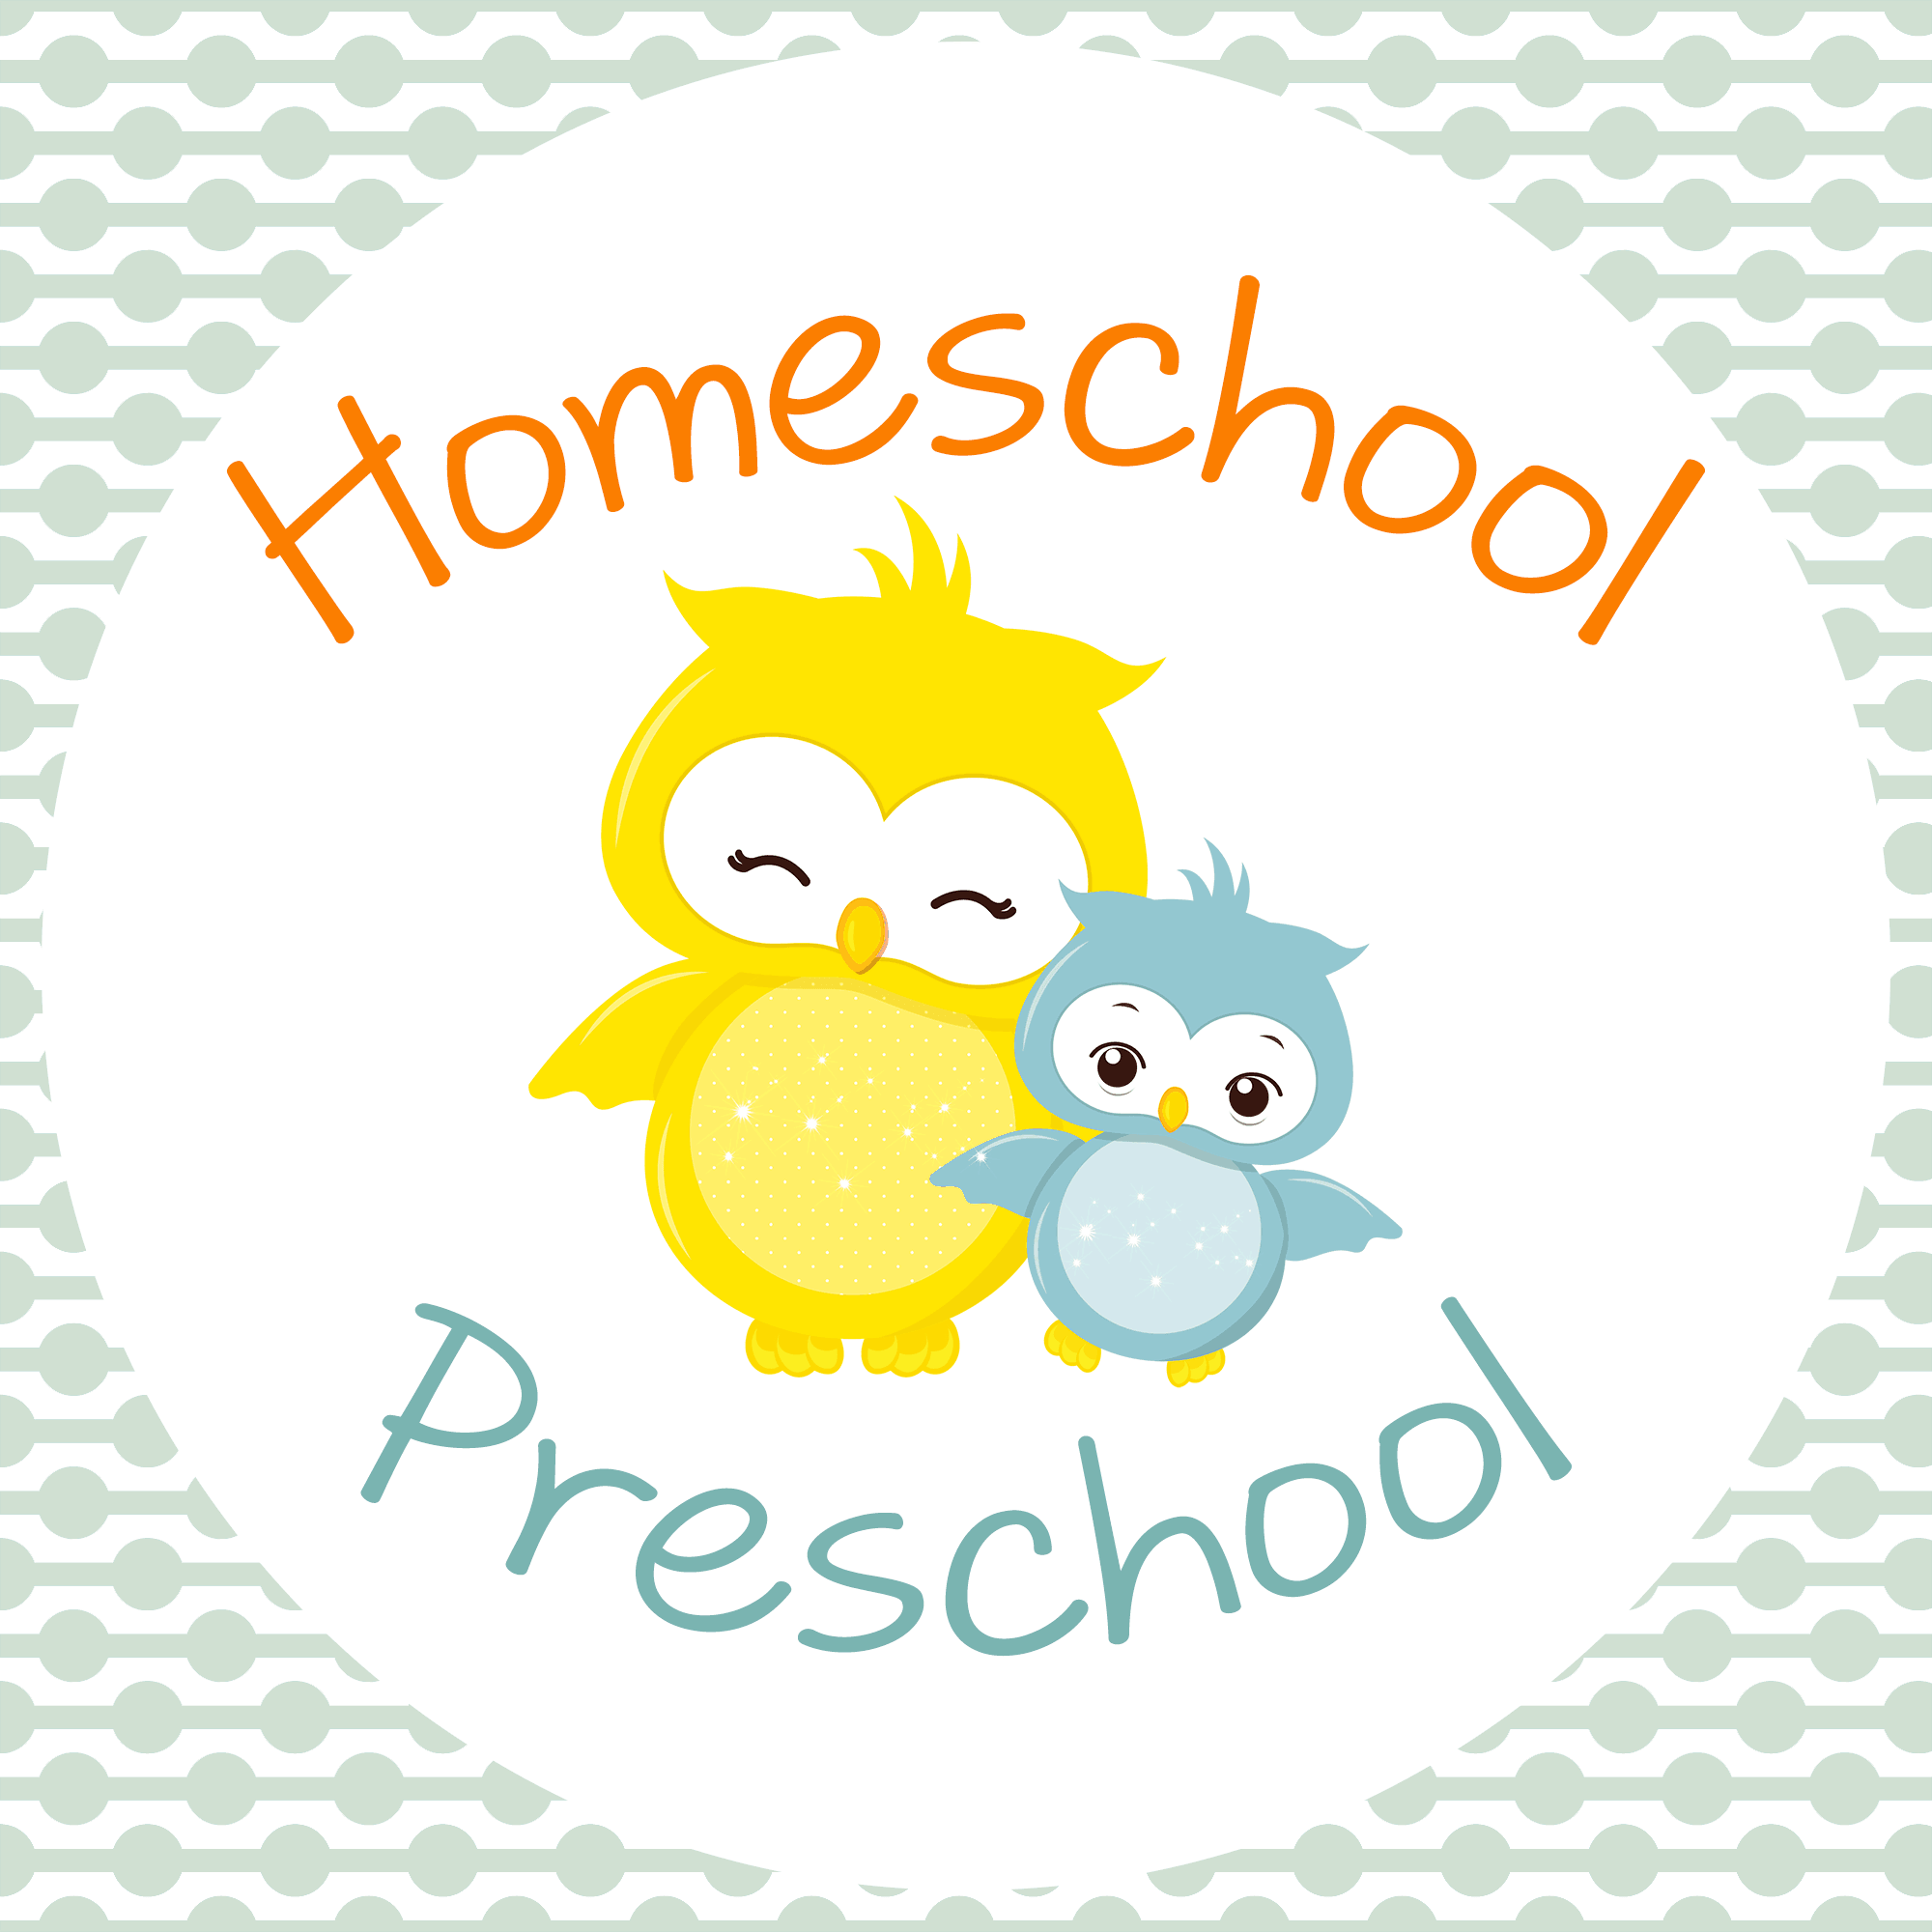 Homeschool Preschool Favicon